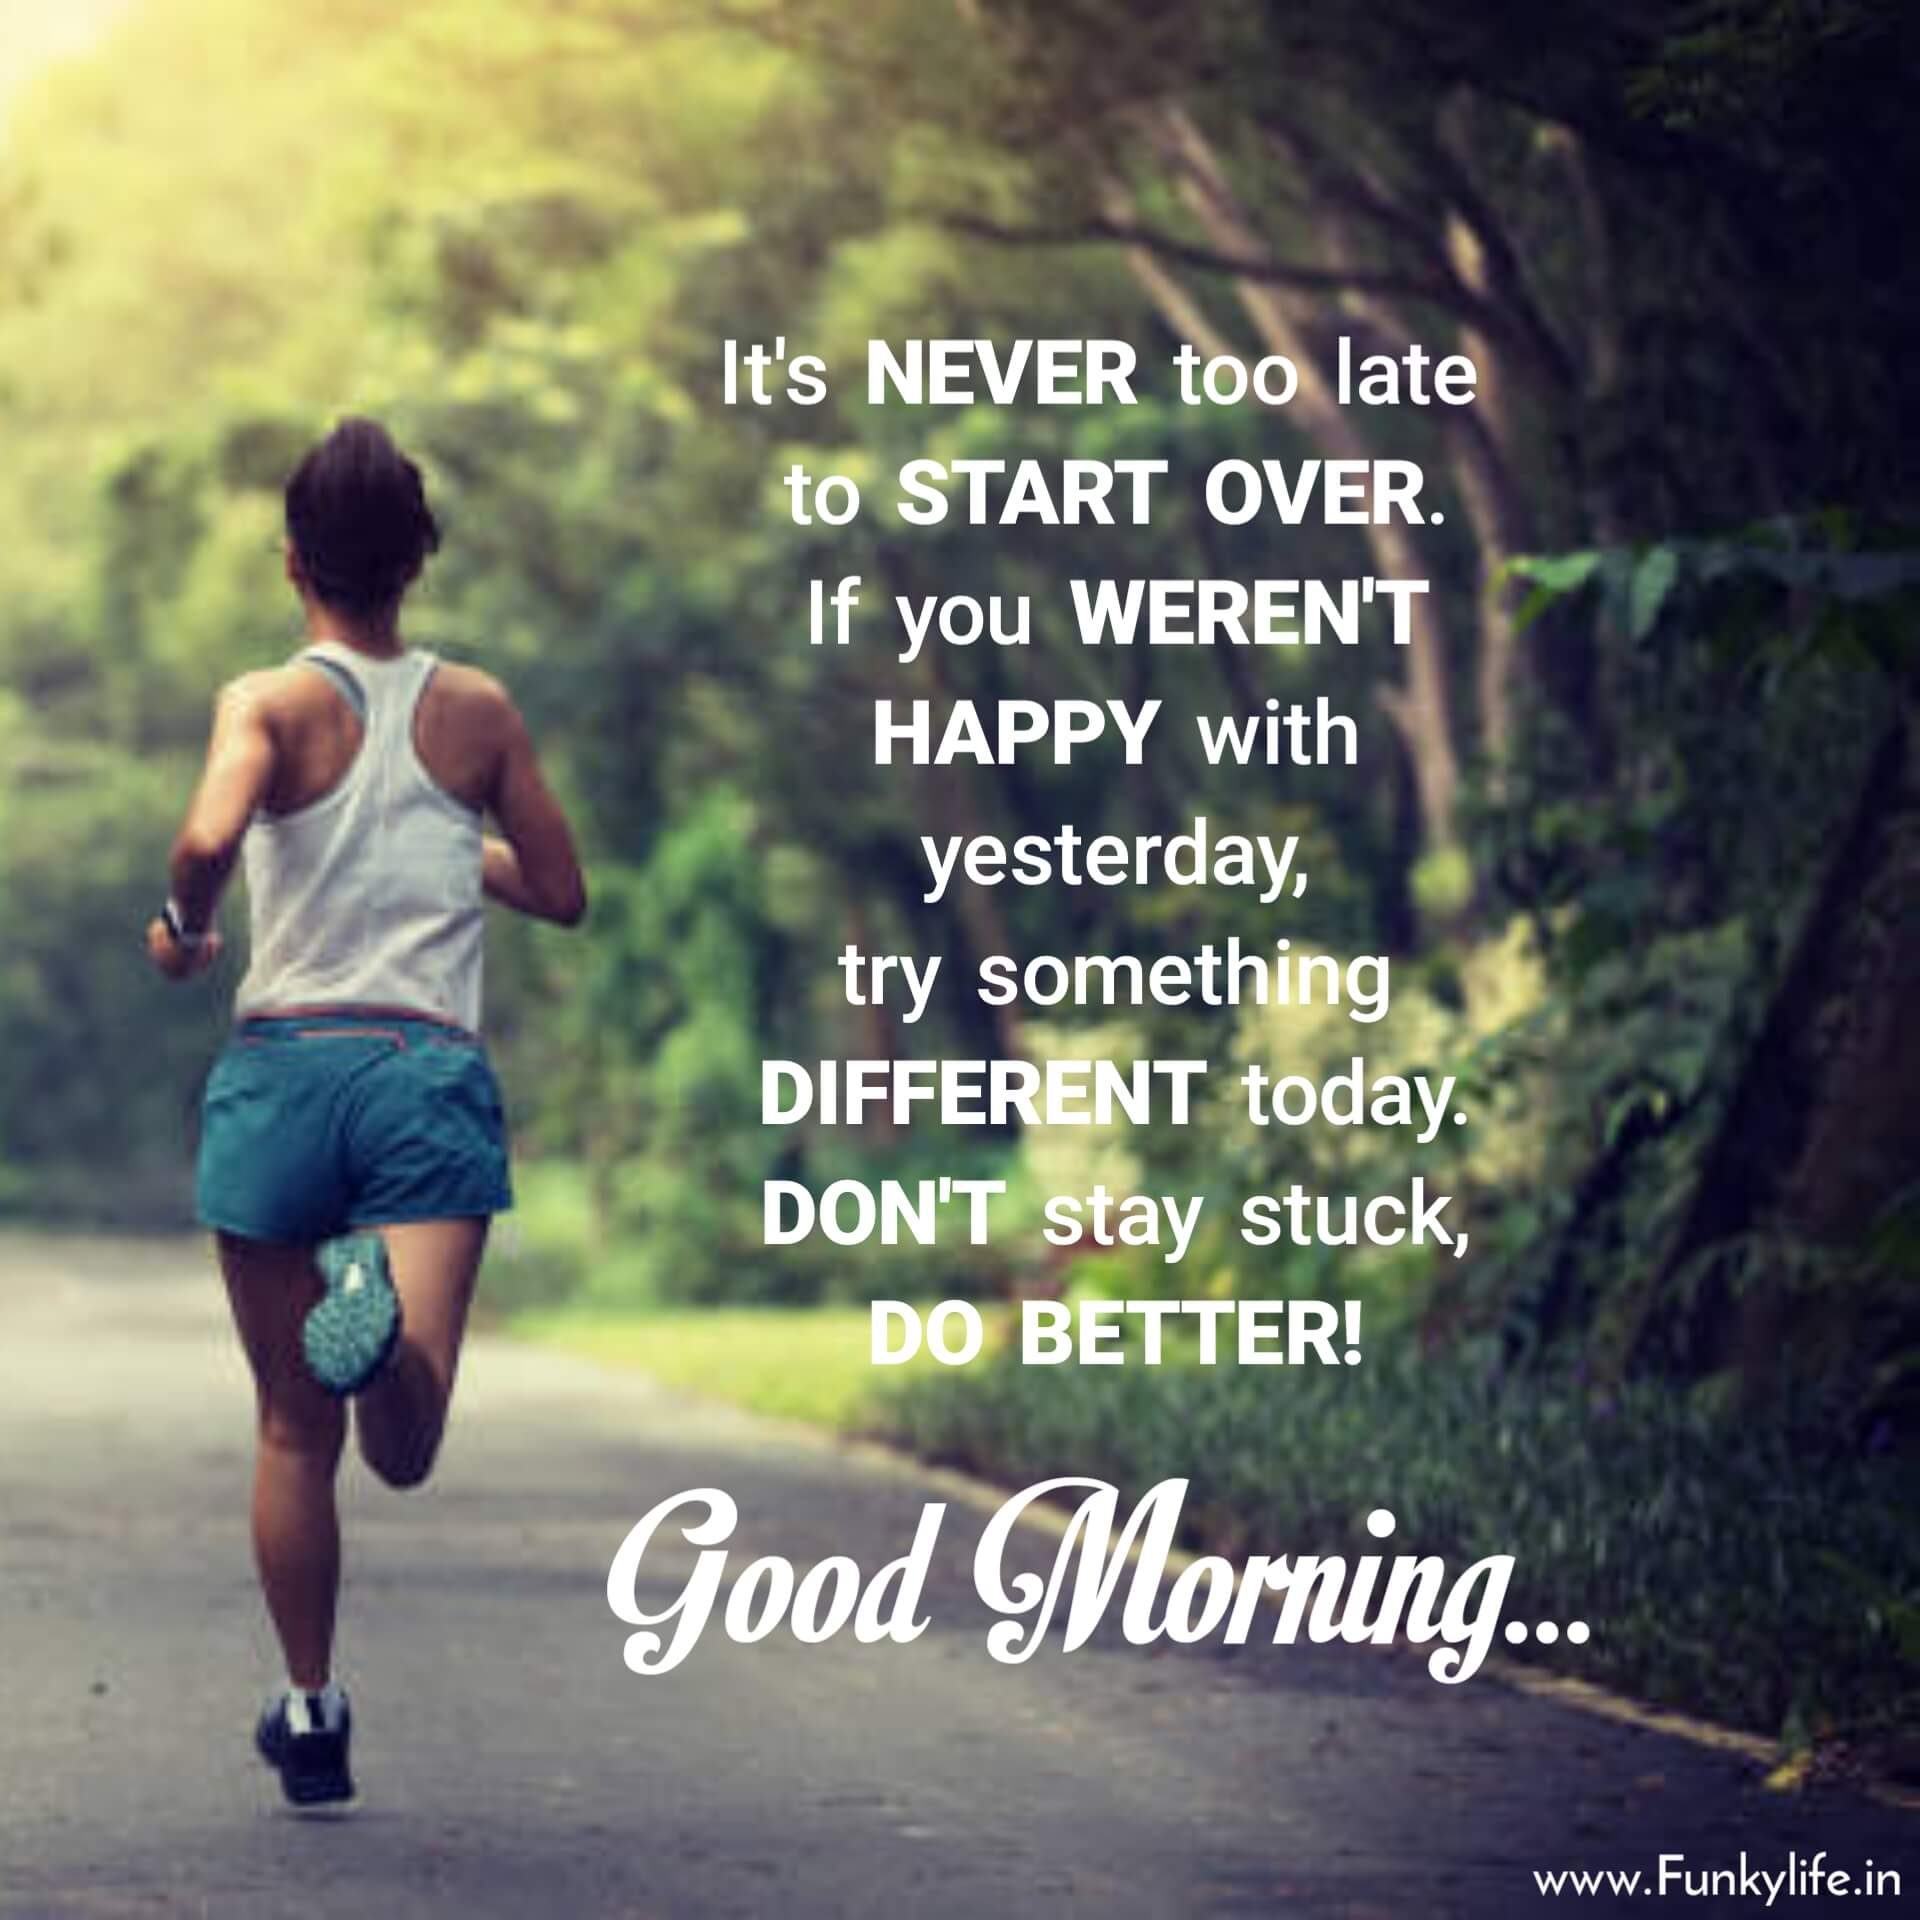 Inspirational Good Morning Image with Quote For WhatsApp